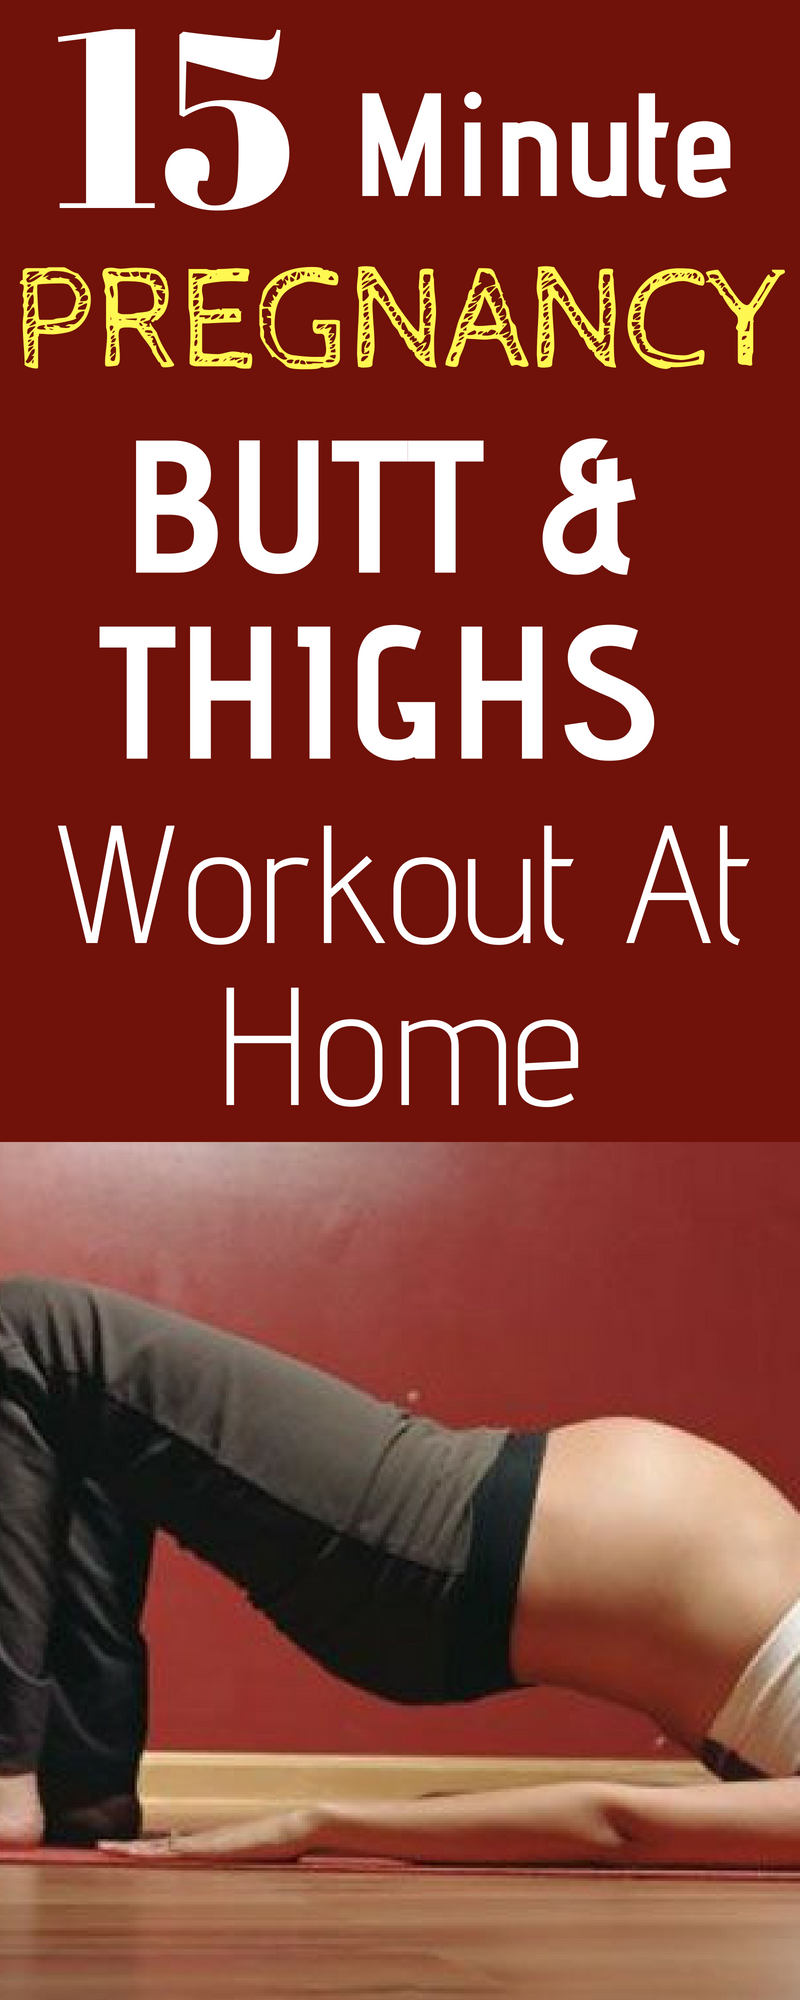 BUTT & THIGHS PREGNANCY WORKOUT